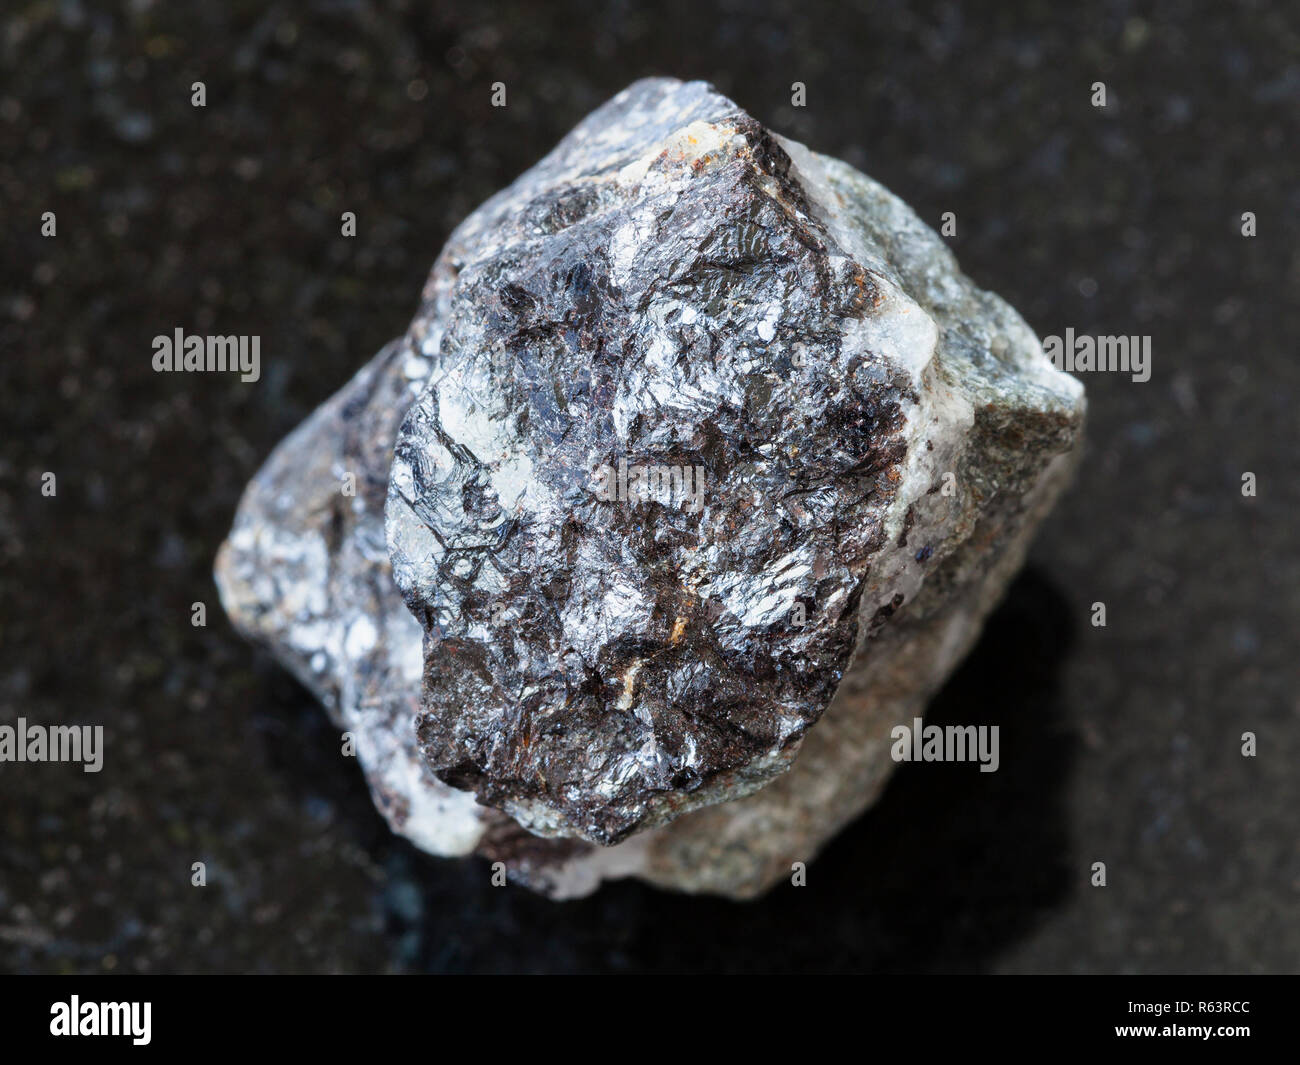 Sphalerite stone on dark background - Stock Image